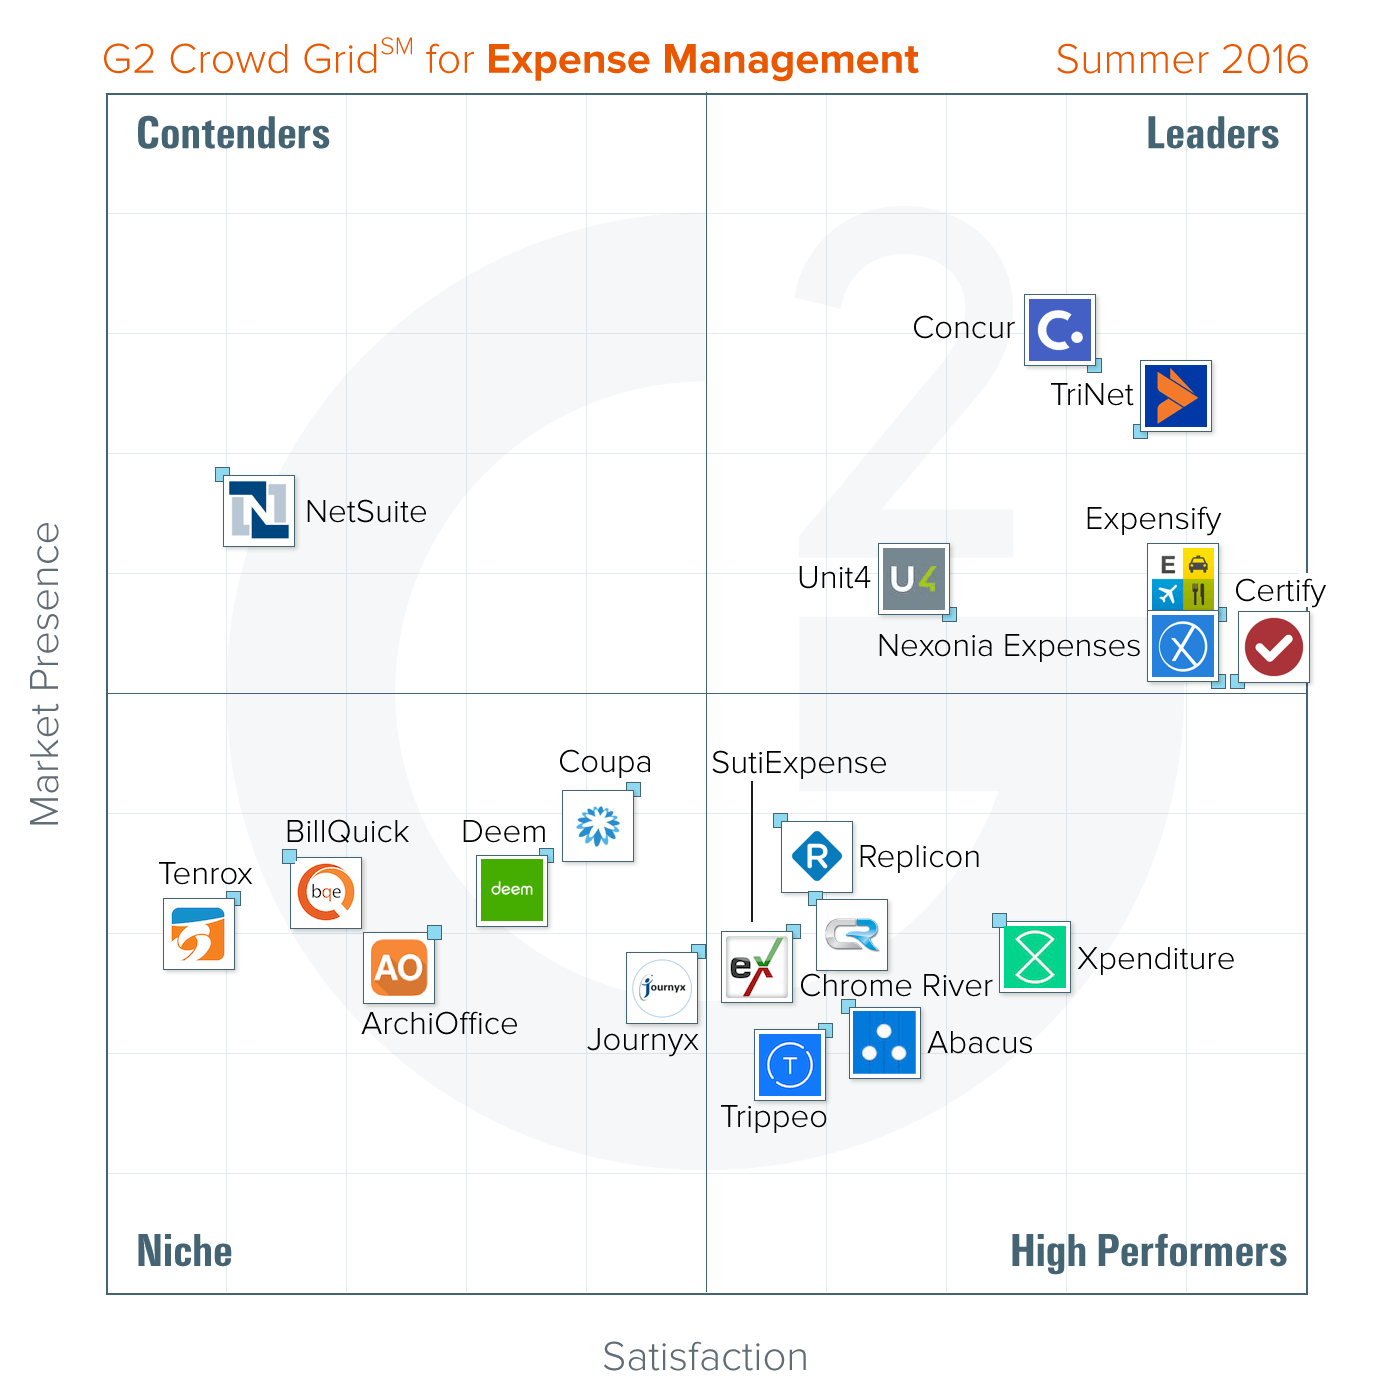 G2 Crowd Grid for Expense Management, Summer 2016